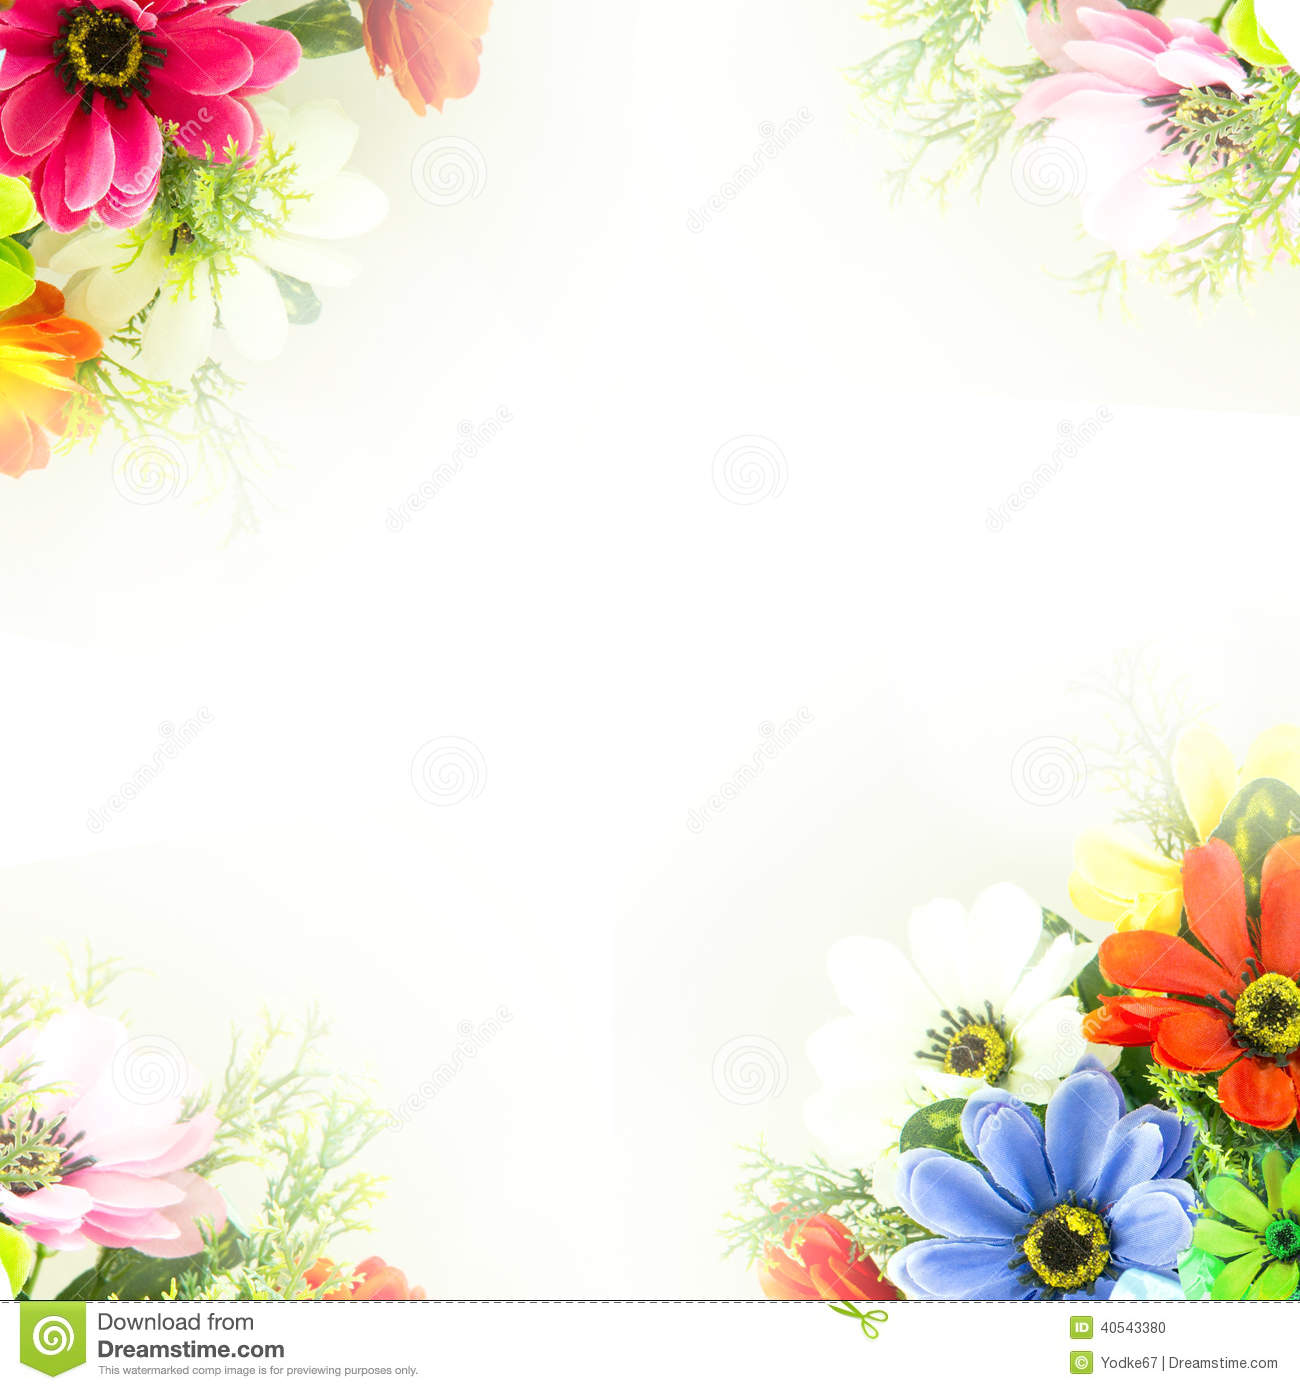 Flower Background Fake Flowers Stock Illustration Illustration Of Abstract Close 40543380